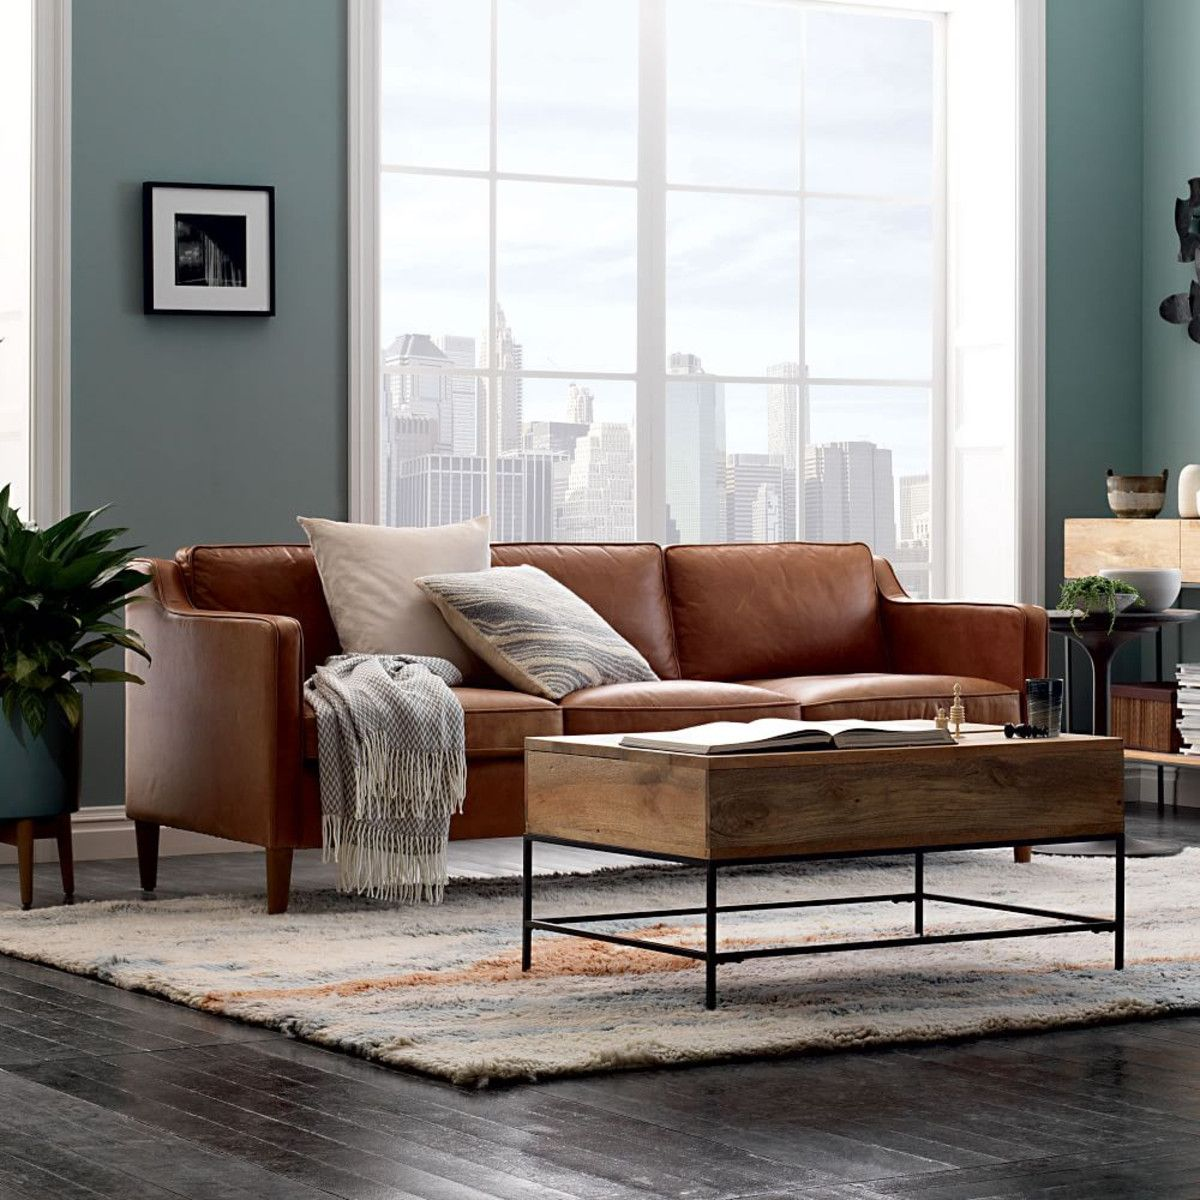 Brown Leather Sofa As The Center Piece Of This Living Room Design